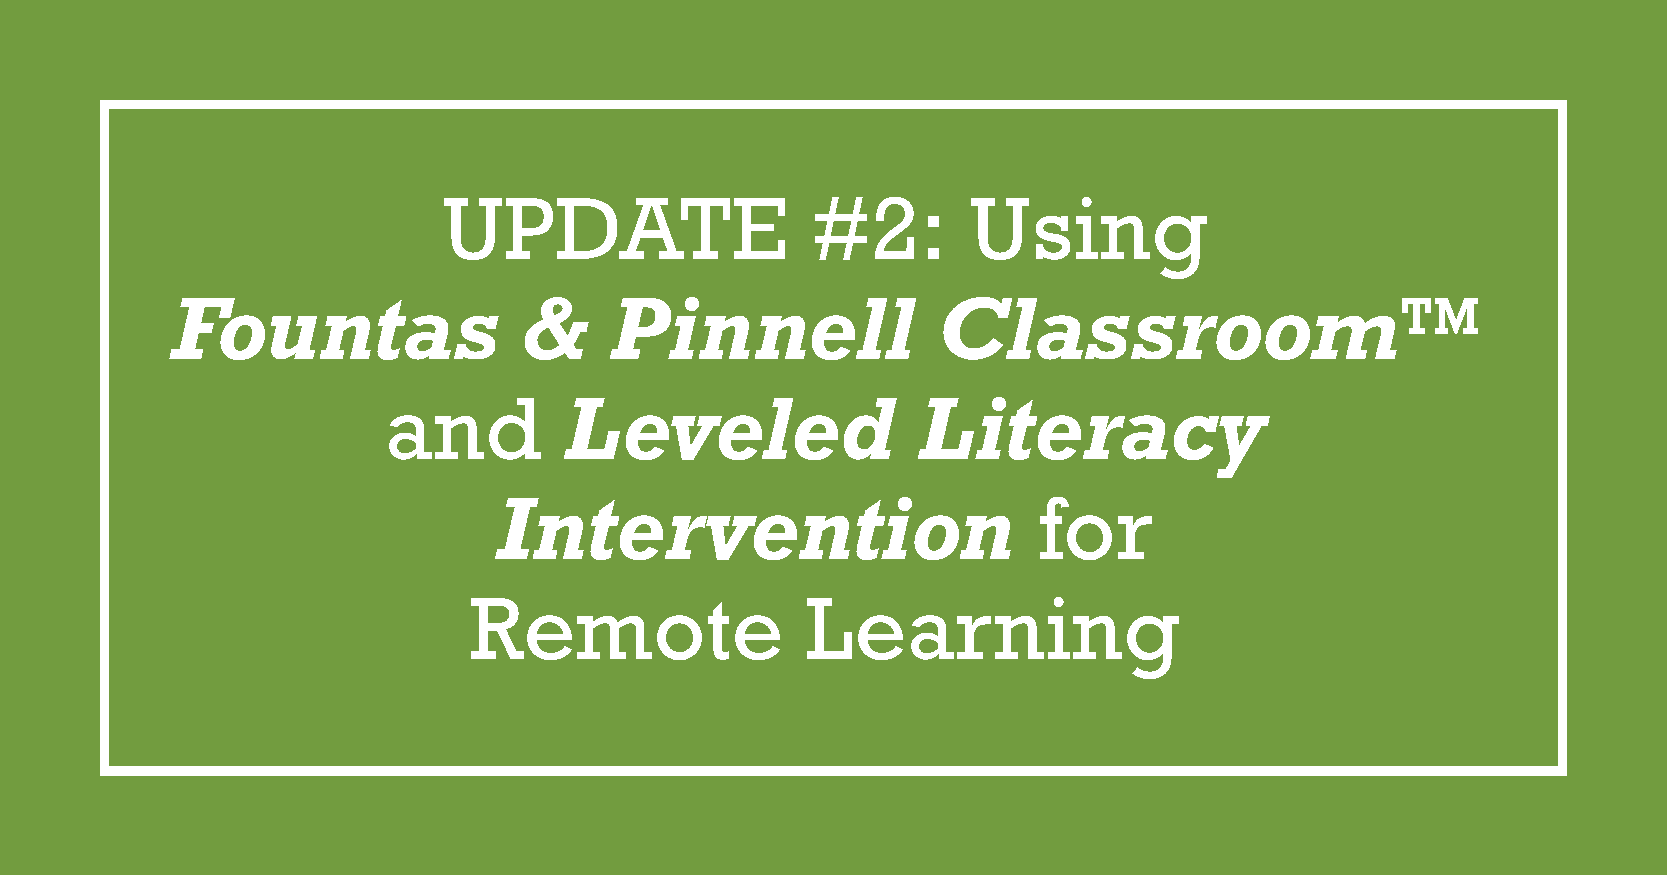 BLOG TITLE: UPDATE #2: Using Fountas & Pinnell Classroom™ and Leveled Literacy Intervention for Remote Learning